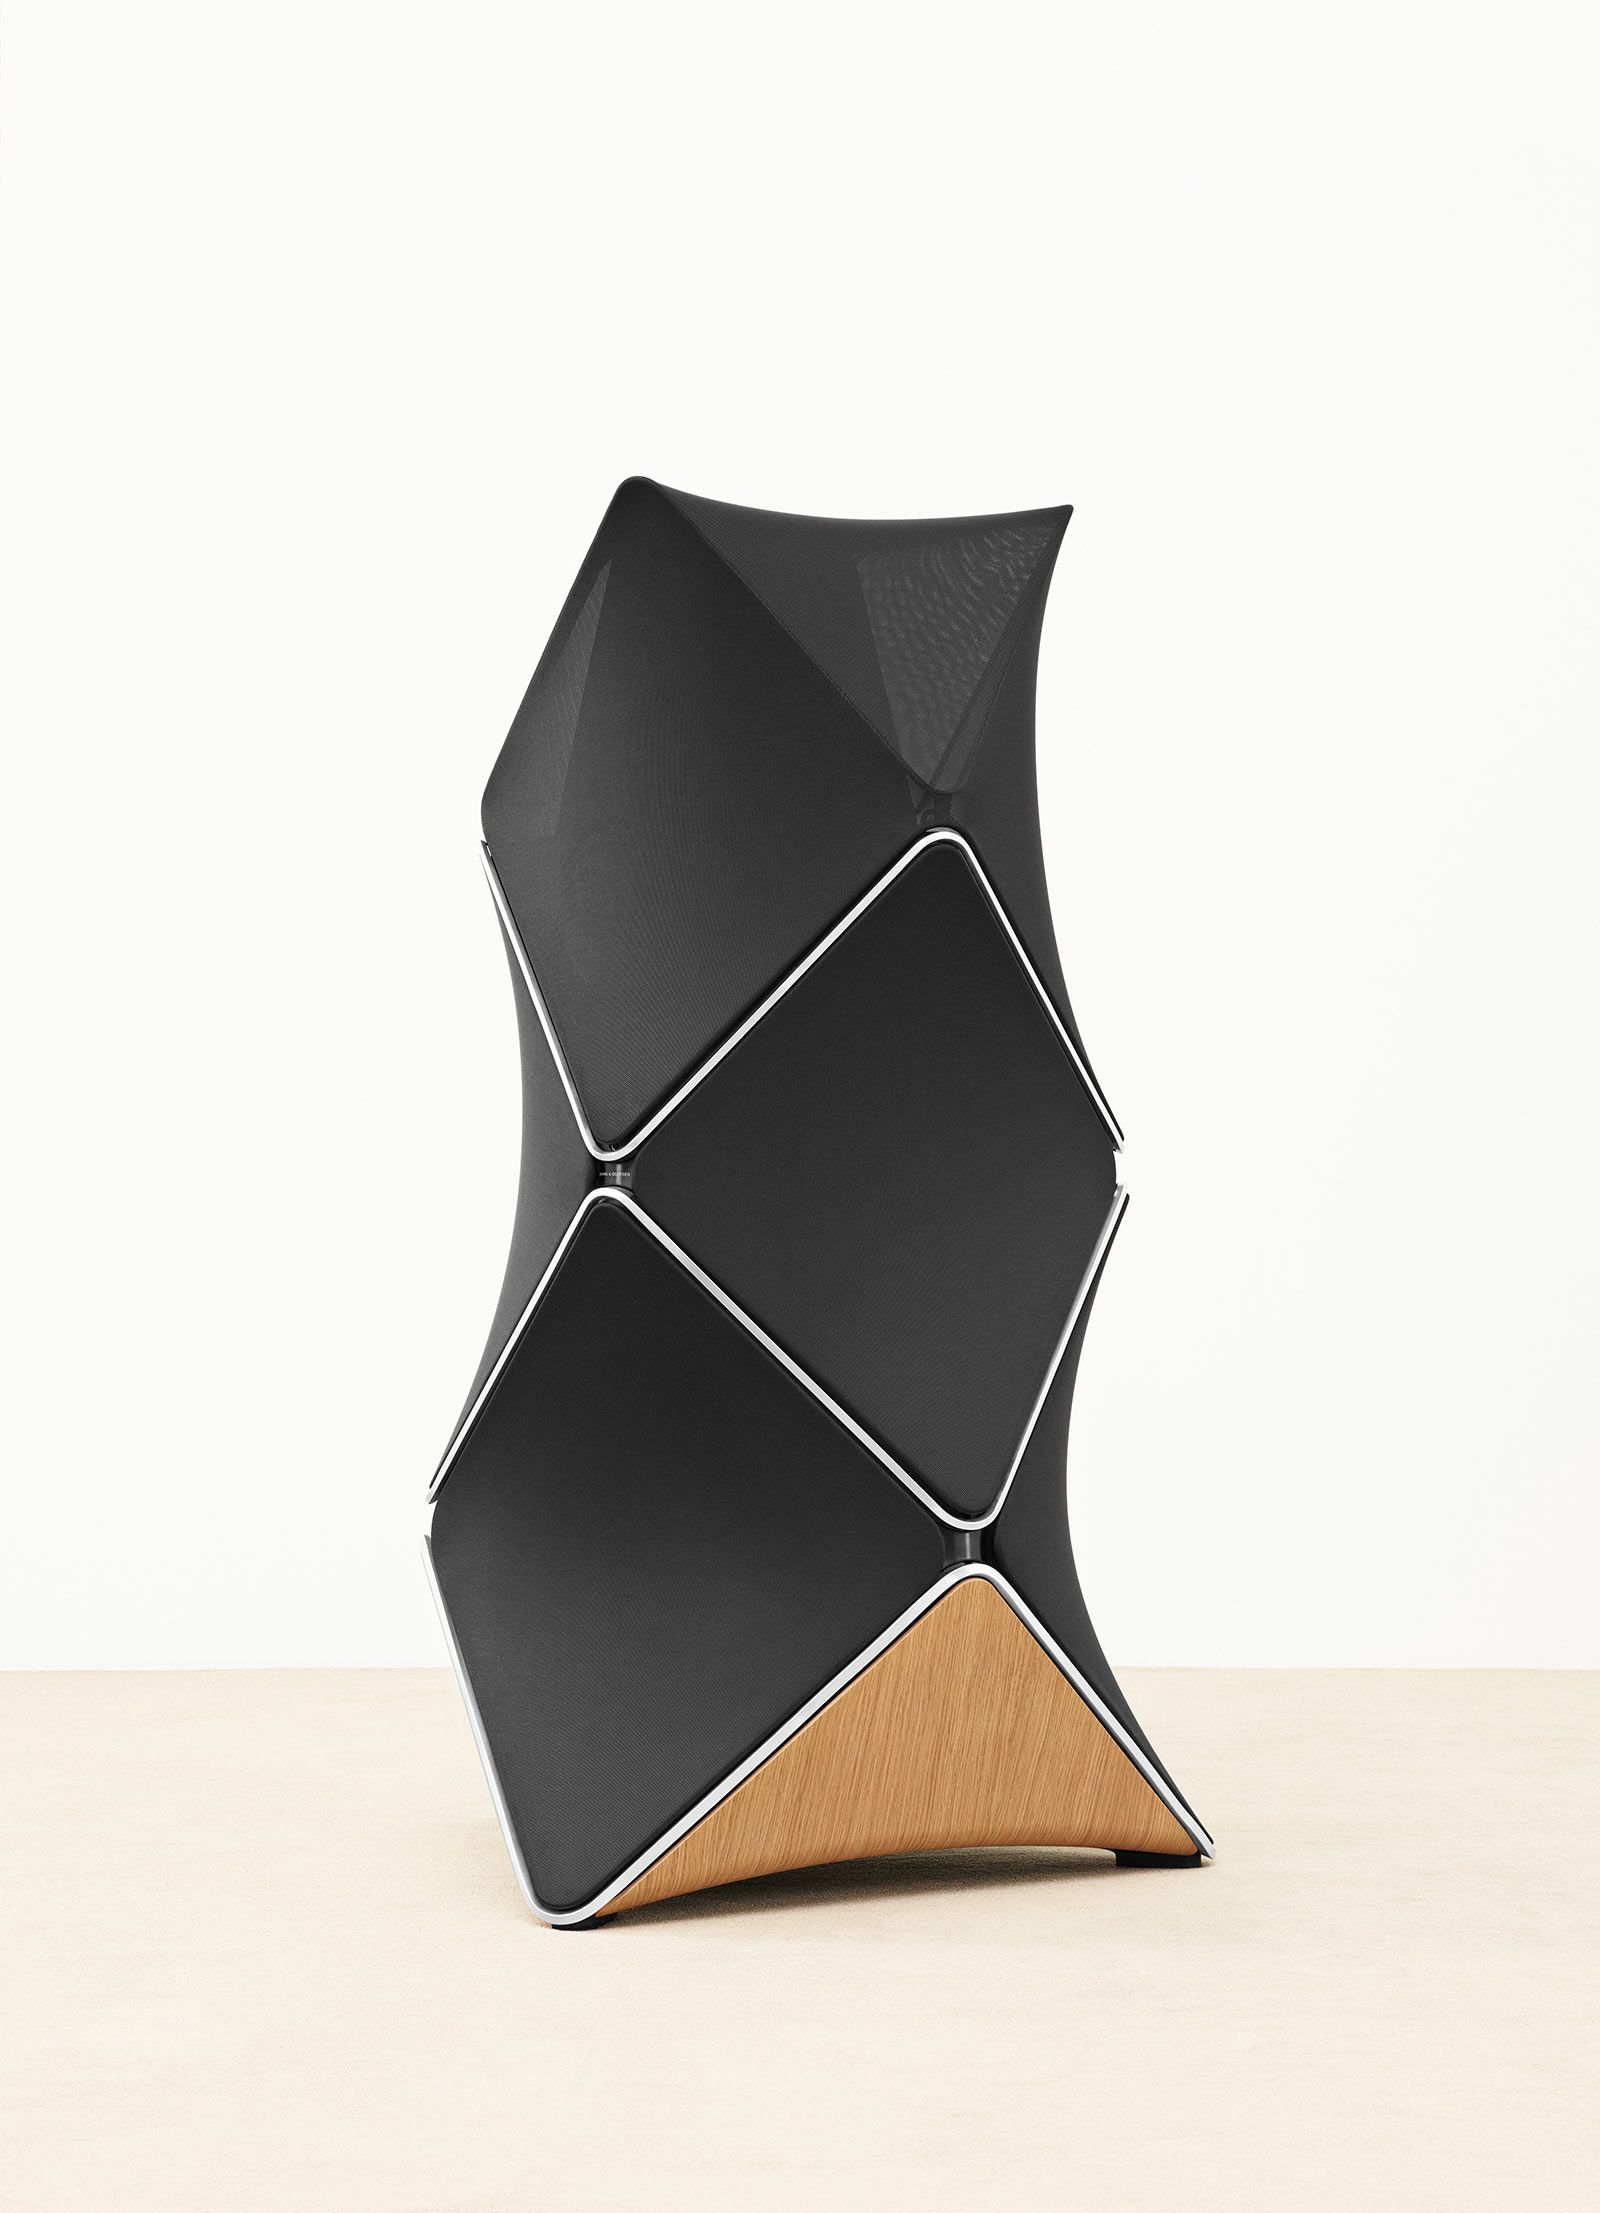 Bang amp olufsen table stand for beolab 7 4 - Beolab 90 Bang Olufsen S High End Floor Loudspeaker